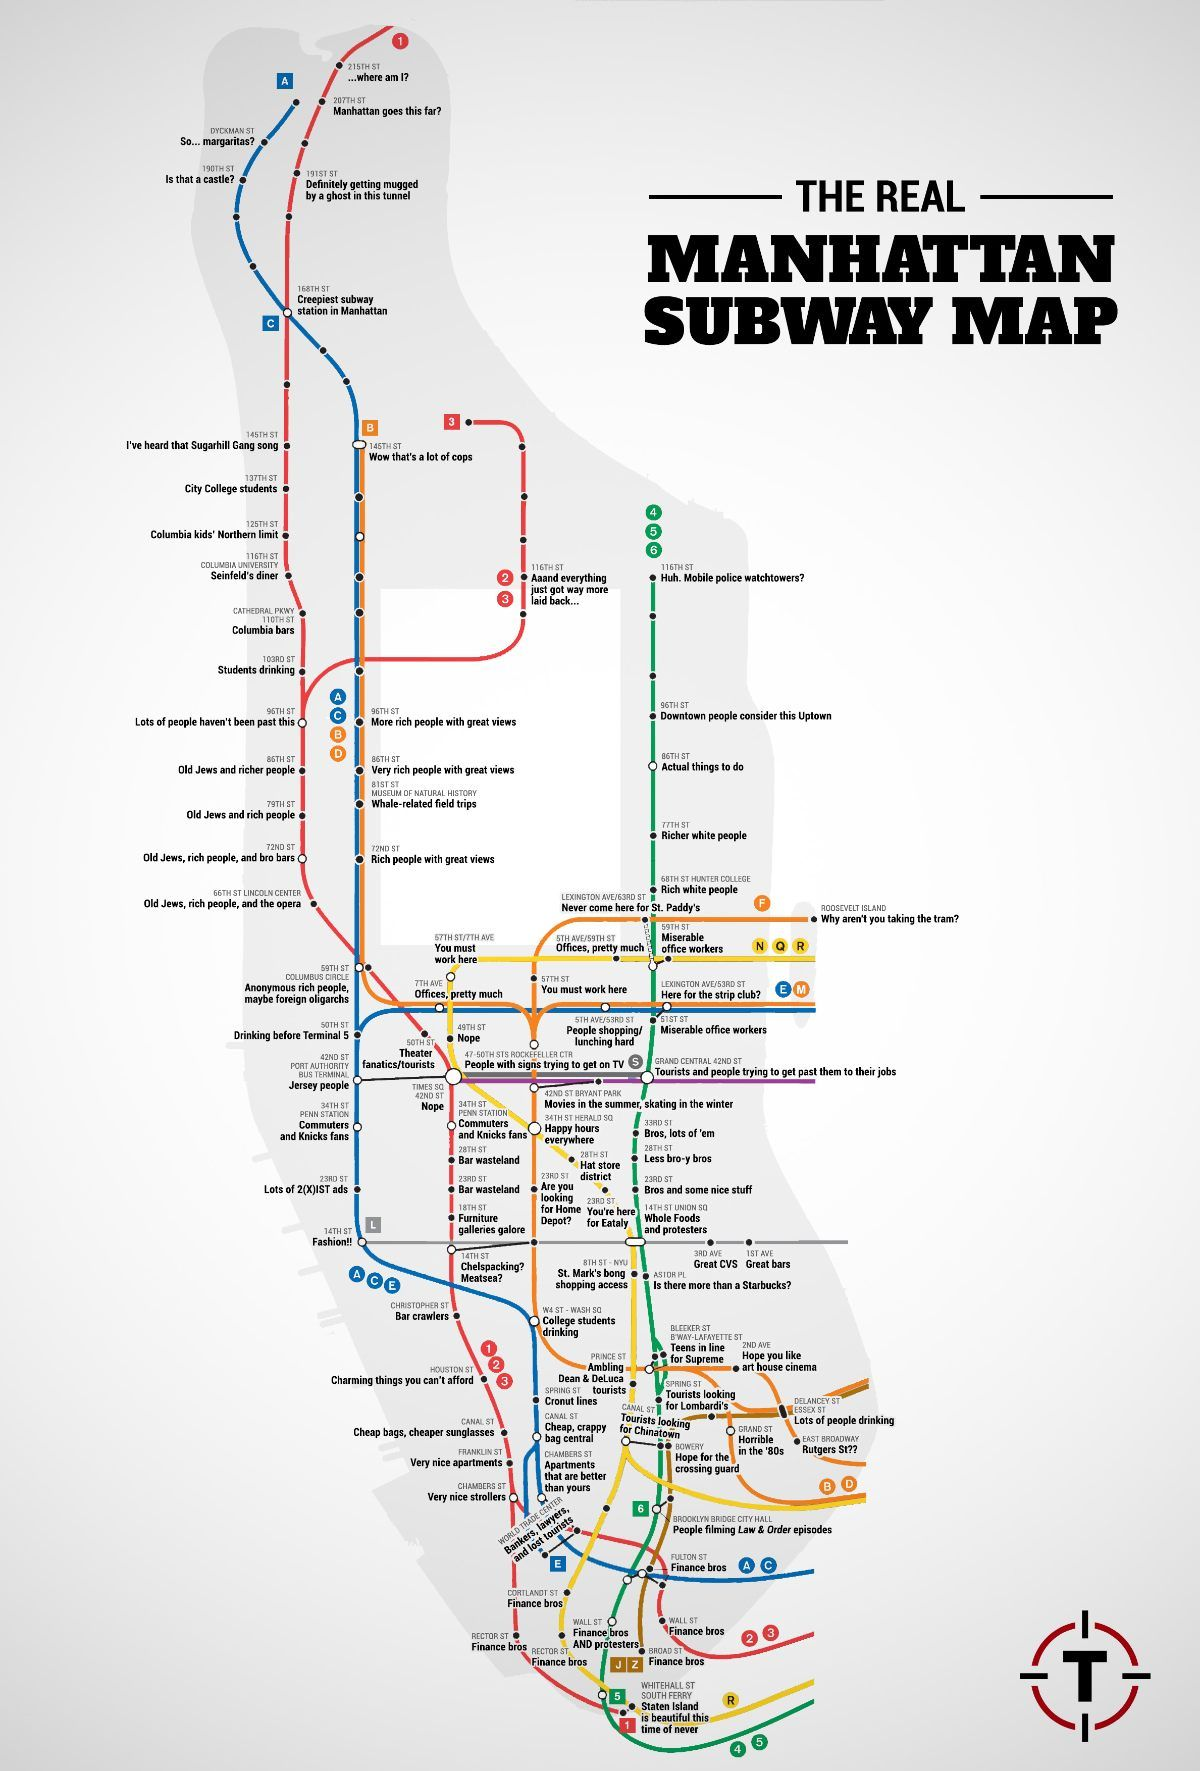 Nyc Uptown Subway Map.The Real Manhattan Subway Map Travel 3 Nyc Subway Map New York